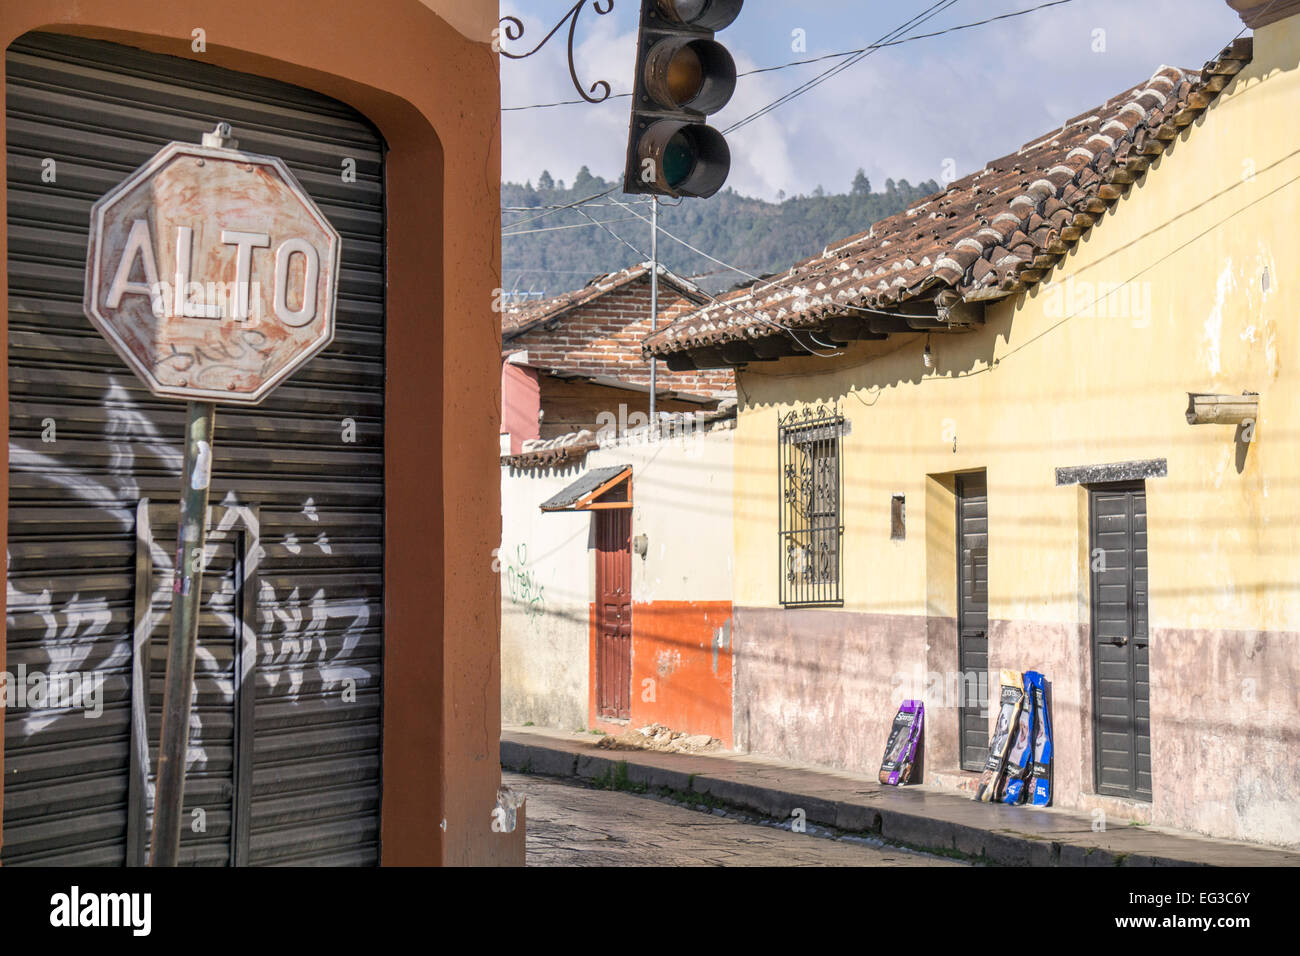 streetcorner in San Cristobal de las Casas with faded old stop sign non functioning traffic light and view of houses - Stock Image